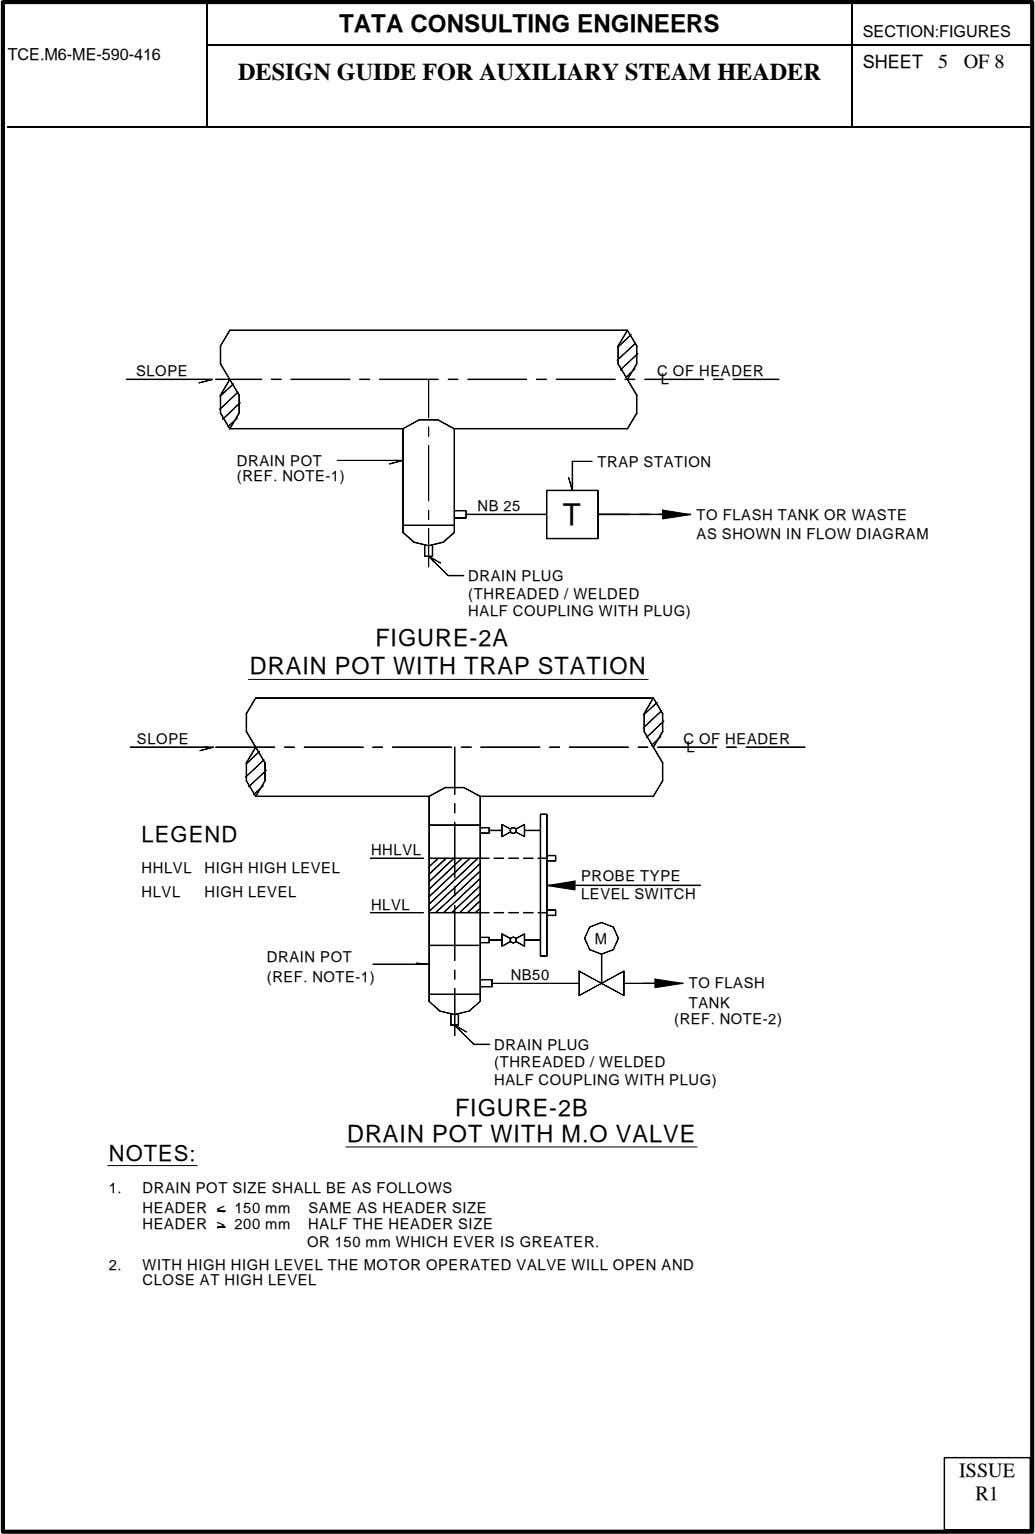 TATA CONSULTING ENGINEERS SECTION:FIGURES TCE.M6-ME-590-416 SHEET 5 OF 8 DESIGN GUIDE FOR AUXILIARY STEAM HEADER